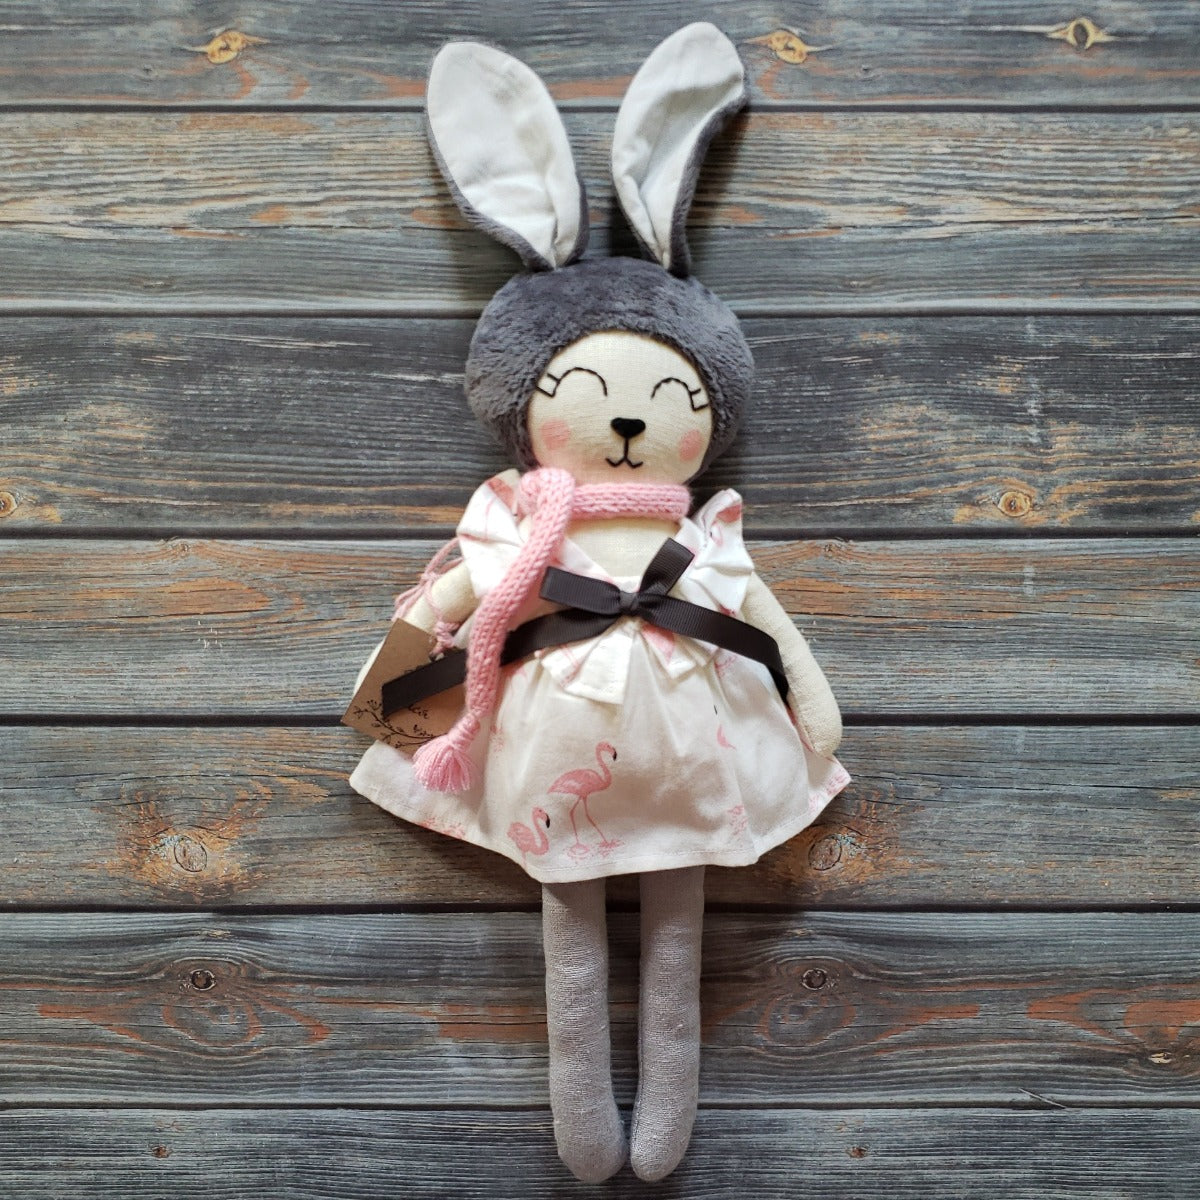 "US stockist of Vasya Vasya's heirloom quality girl bunny made from linen fabric, soft plush and hypoallergenic filler.  Cream color with grey head and ears.  Wears beautiful flamingo print dress with pink scarf.  Measures approximately 15""."